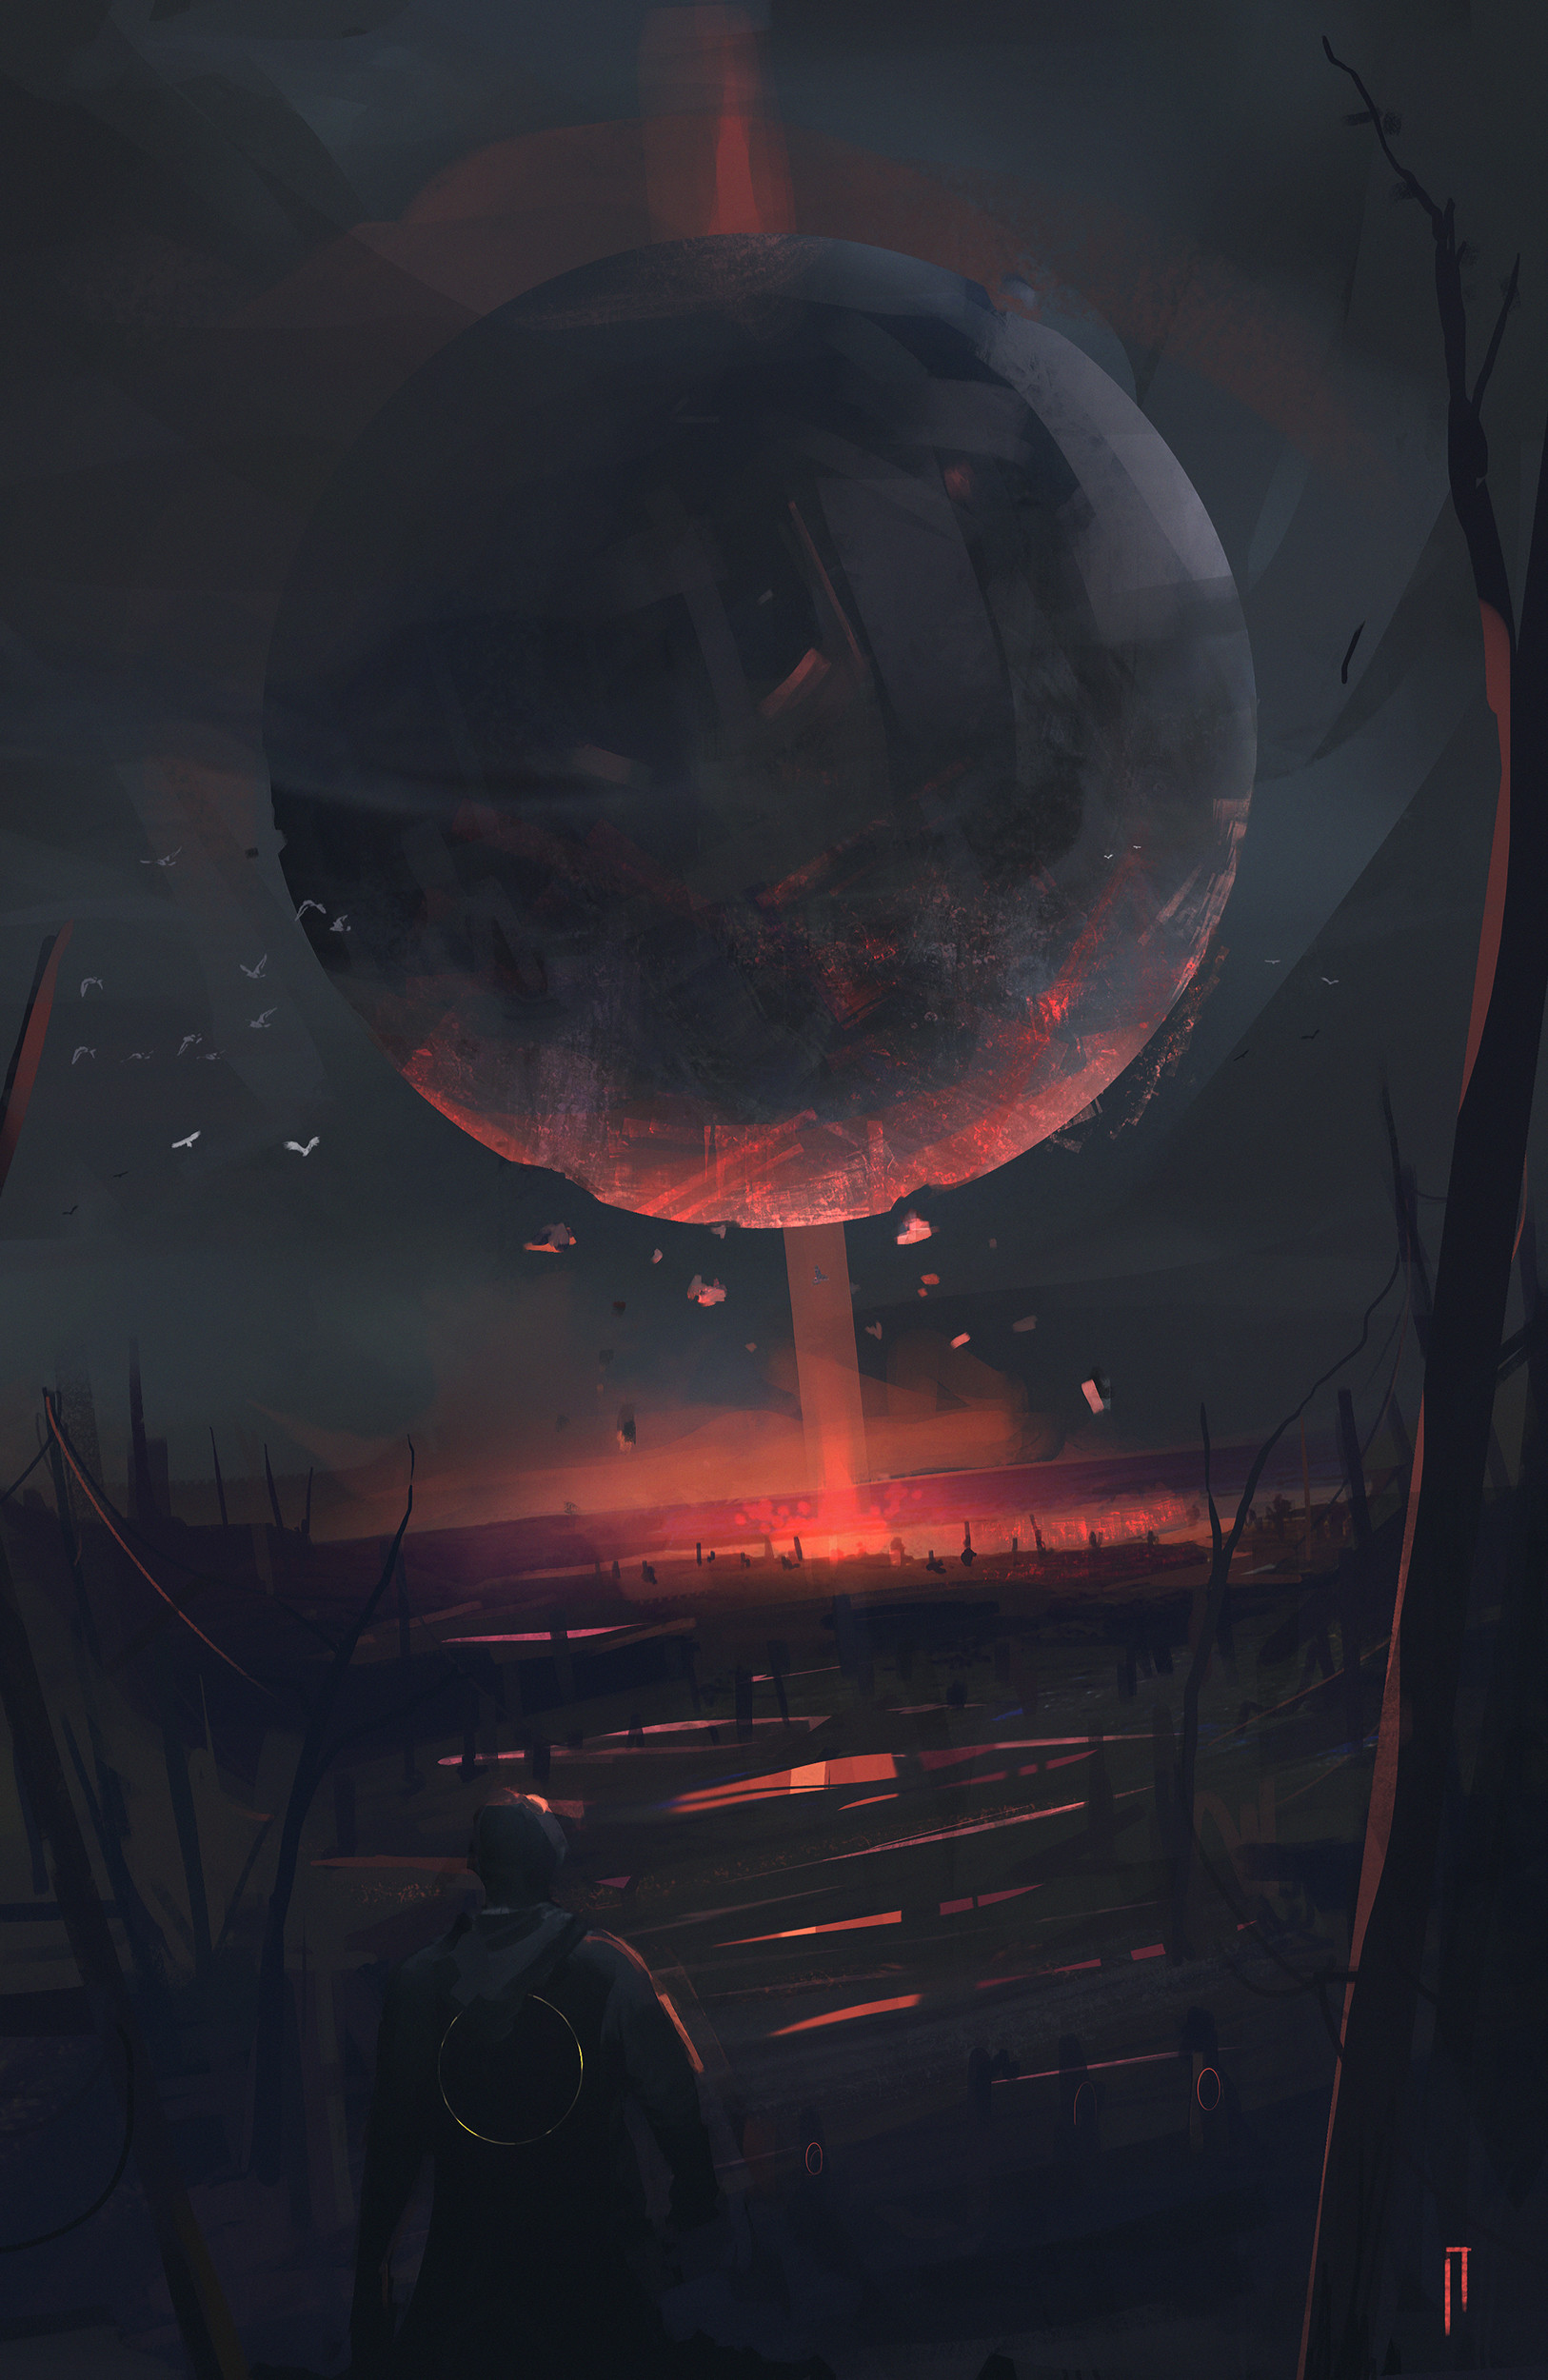 Ismail inceoglu material sphere sketch